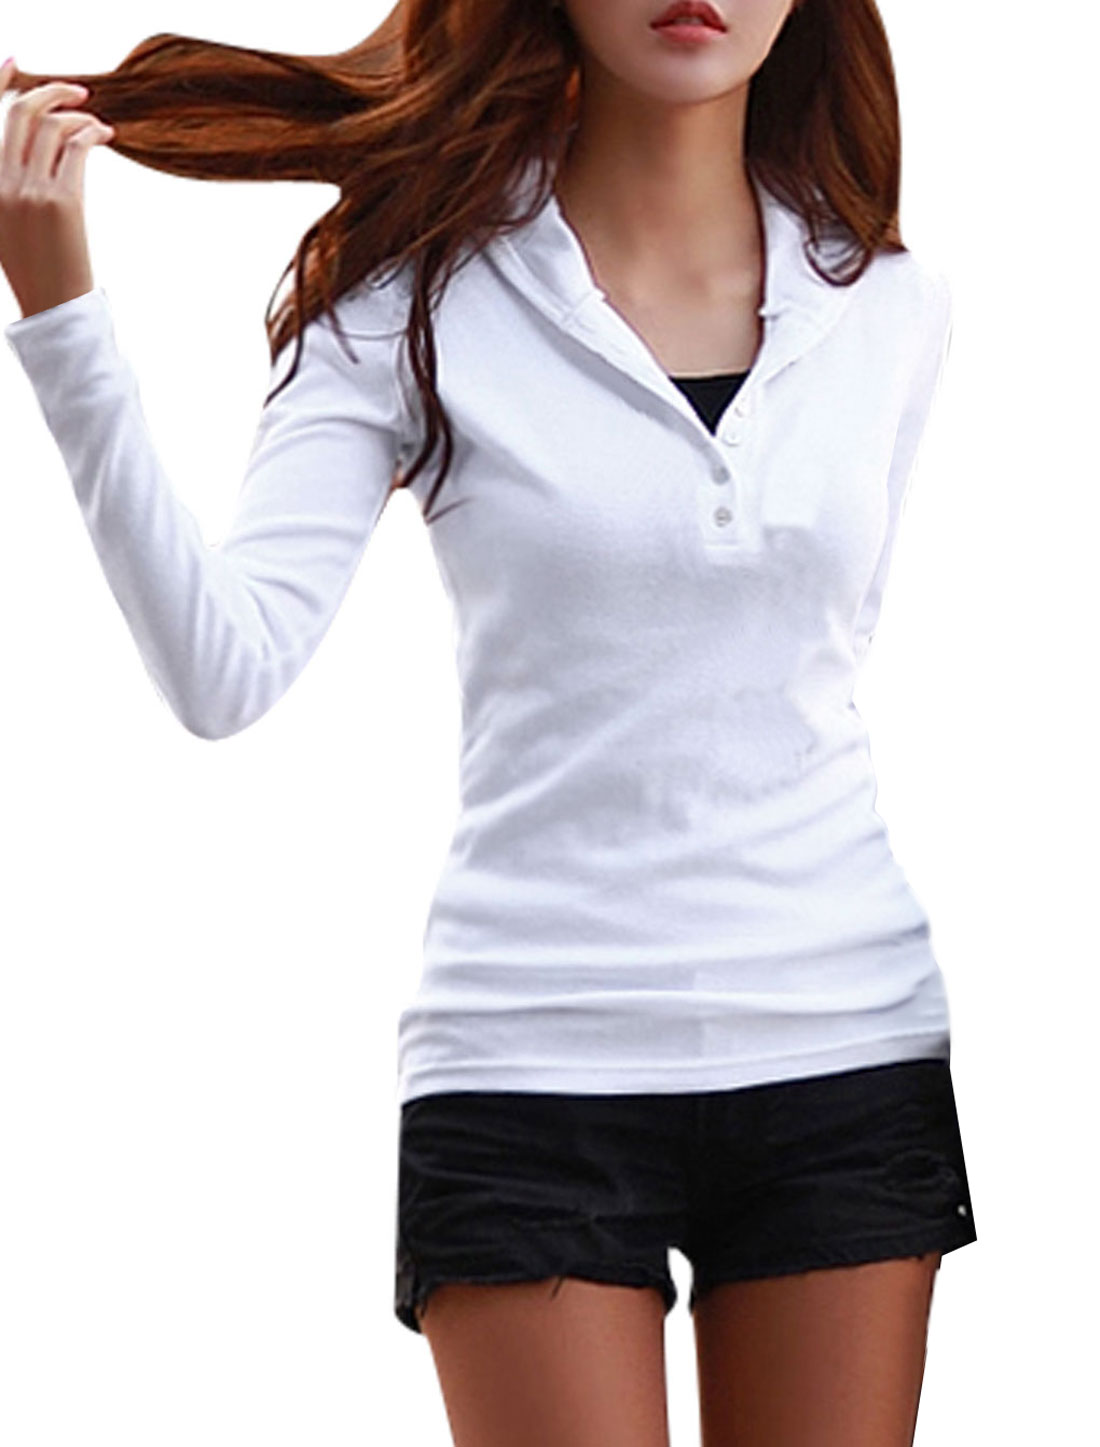 Woman Full Sleeves Slim Fit White Hooded Shirt M